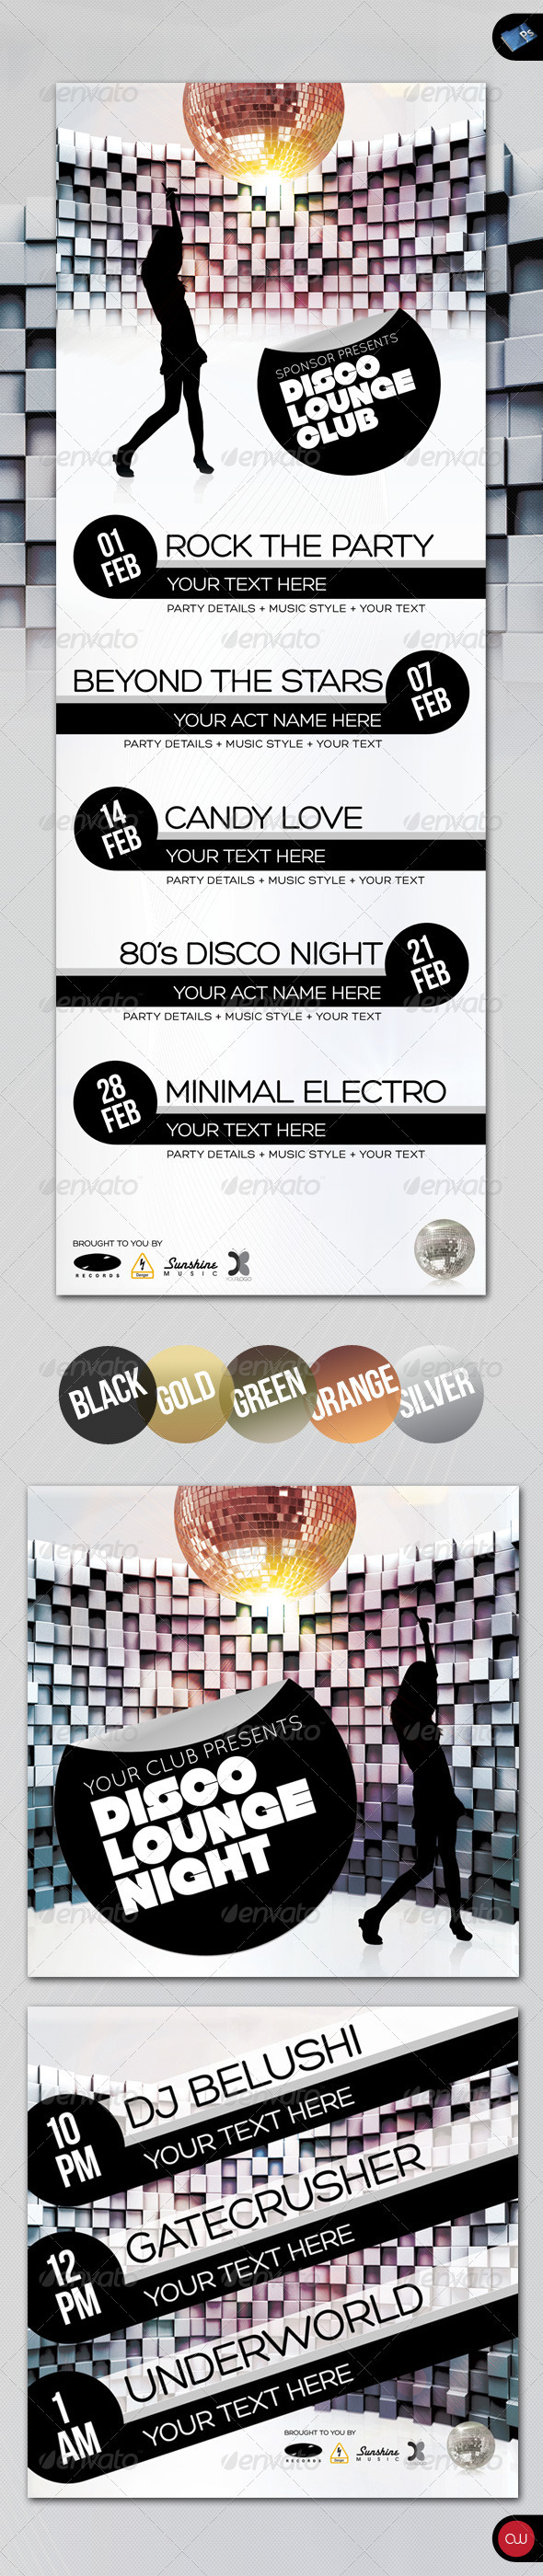 GraphicRiver Music & Event Flyer Disco Lounge Club 159442